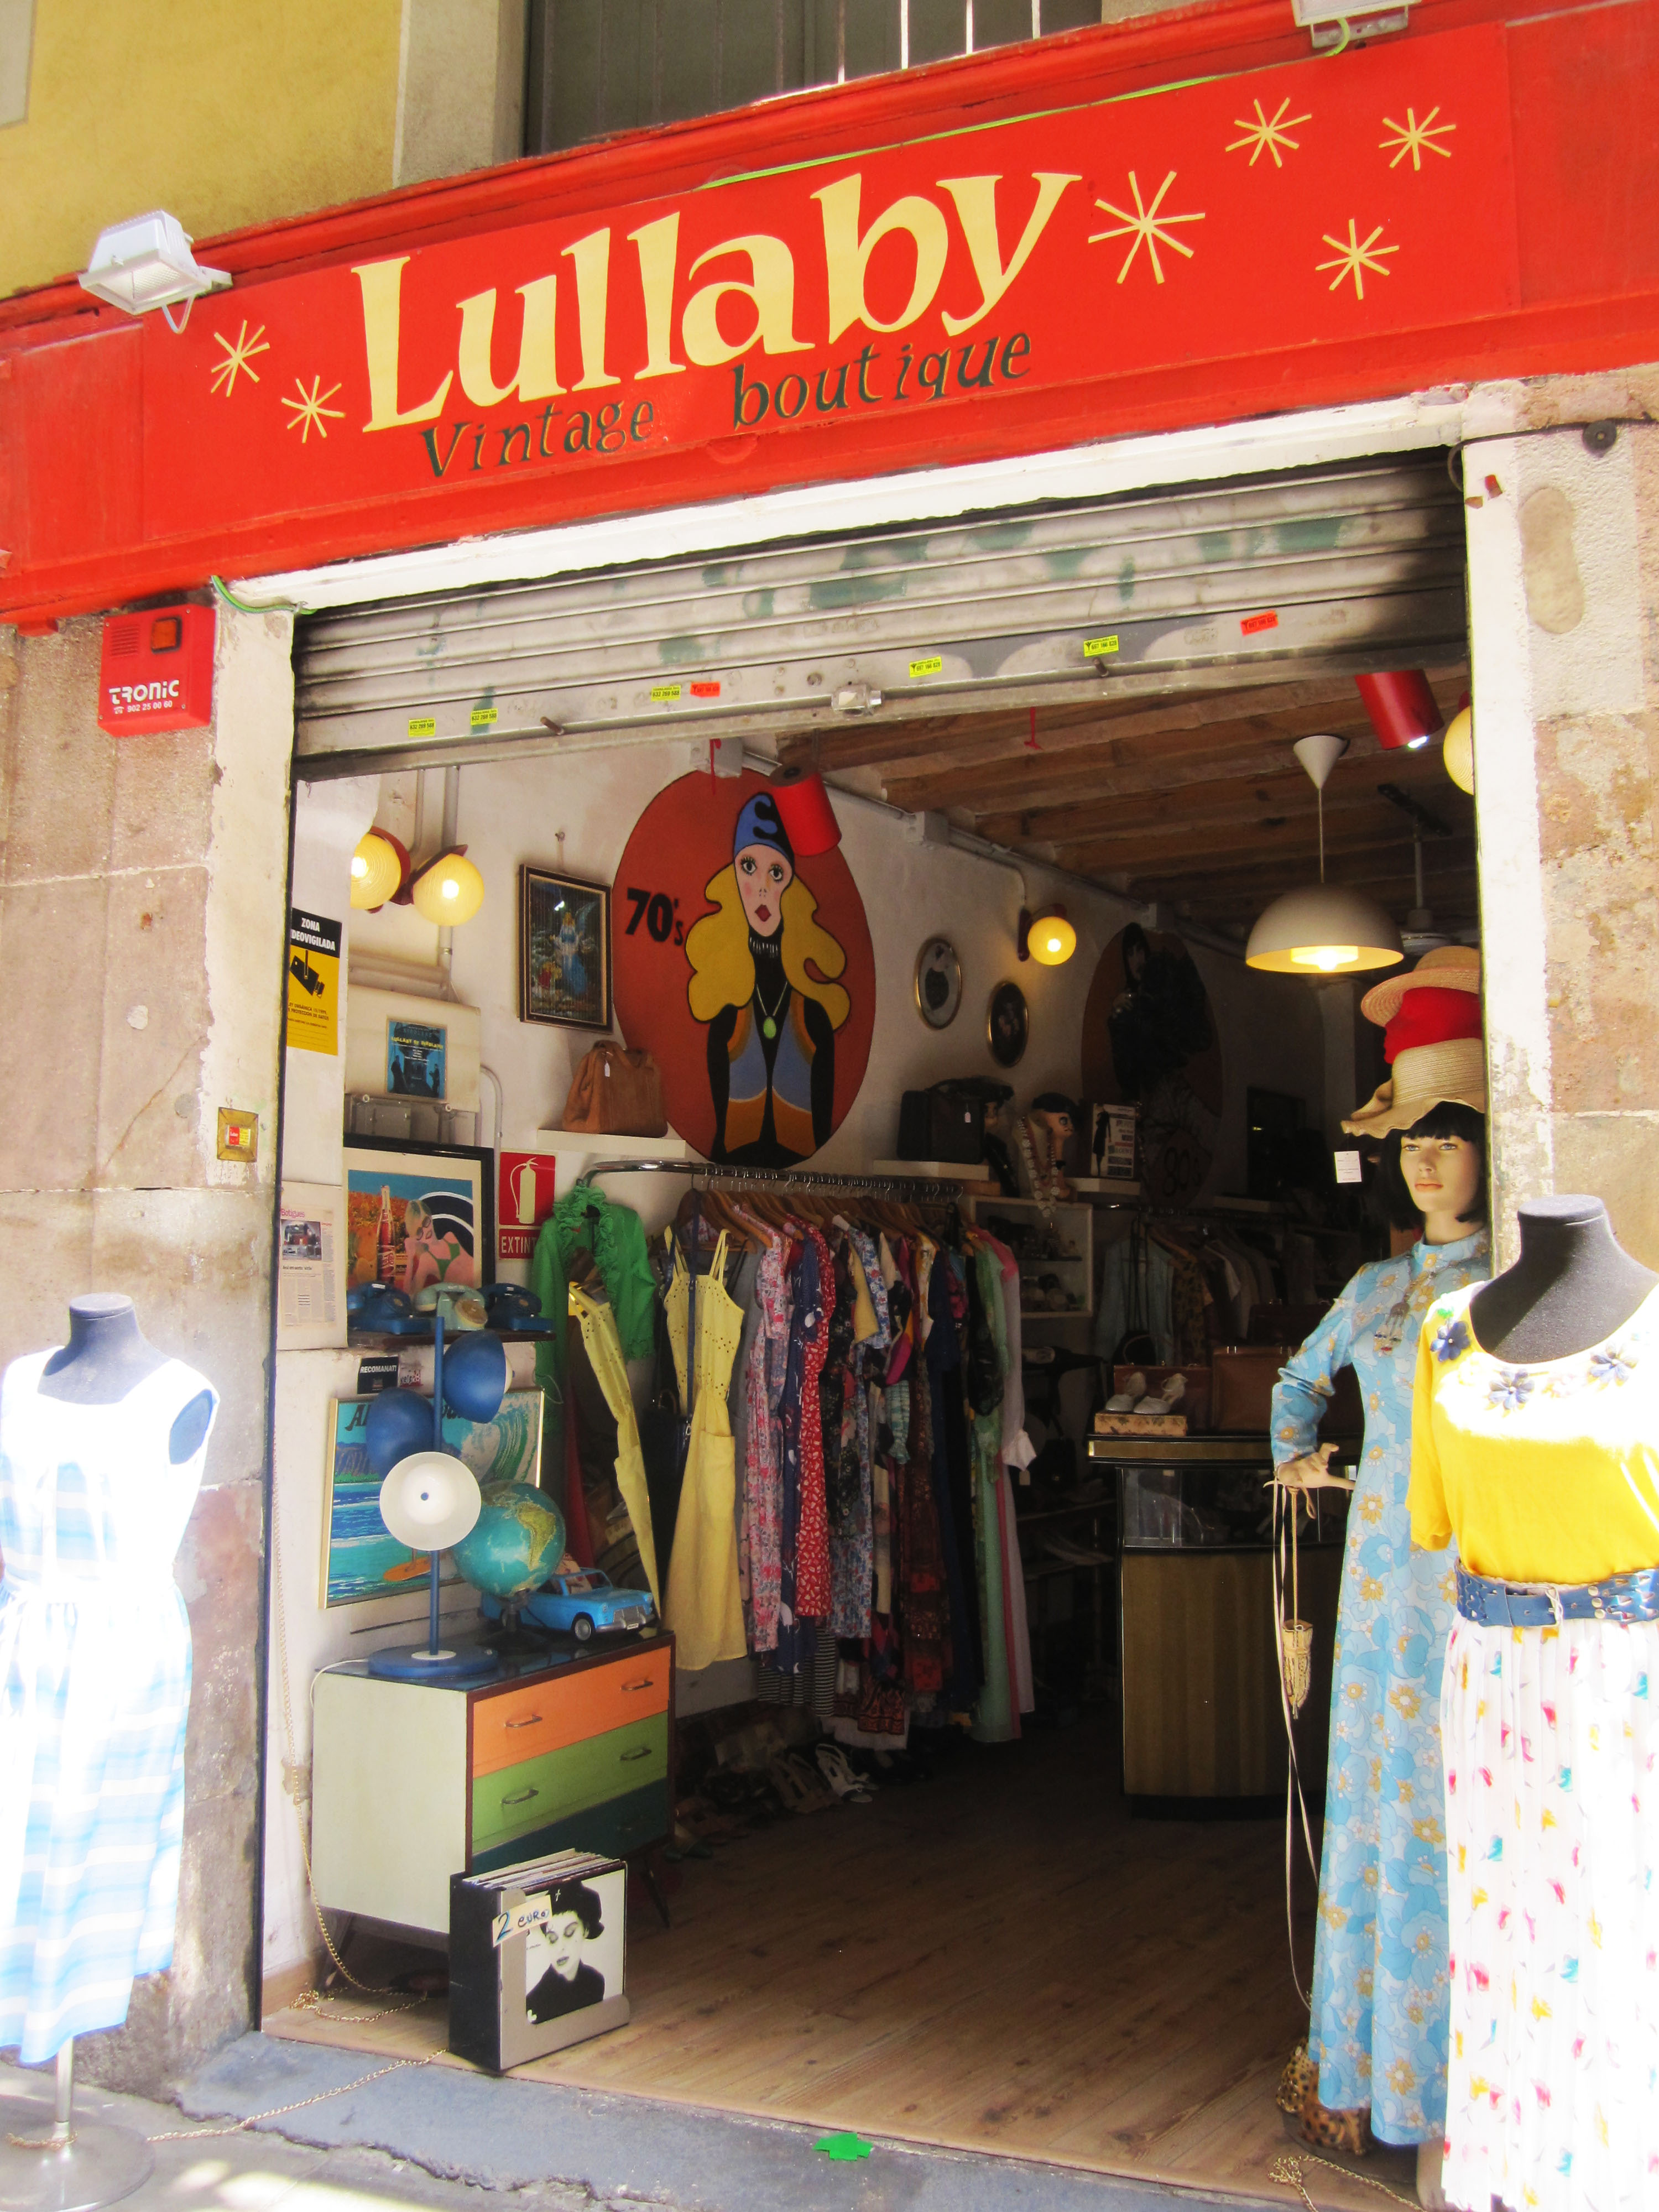 One of the charming Vintage Shops that are located on the alley